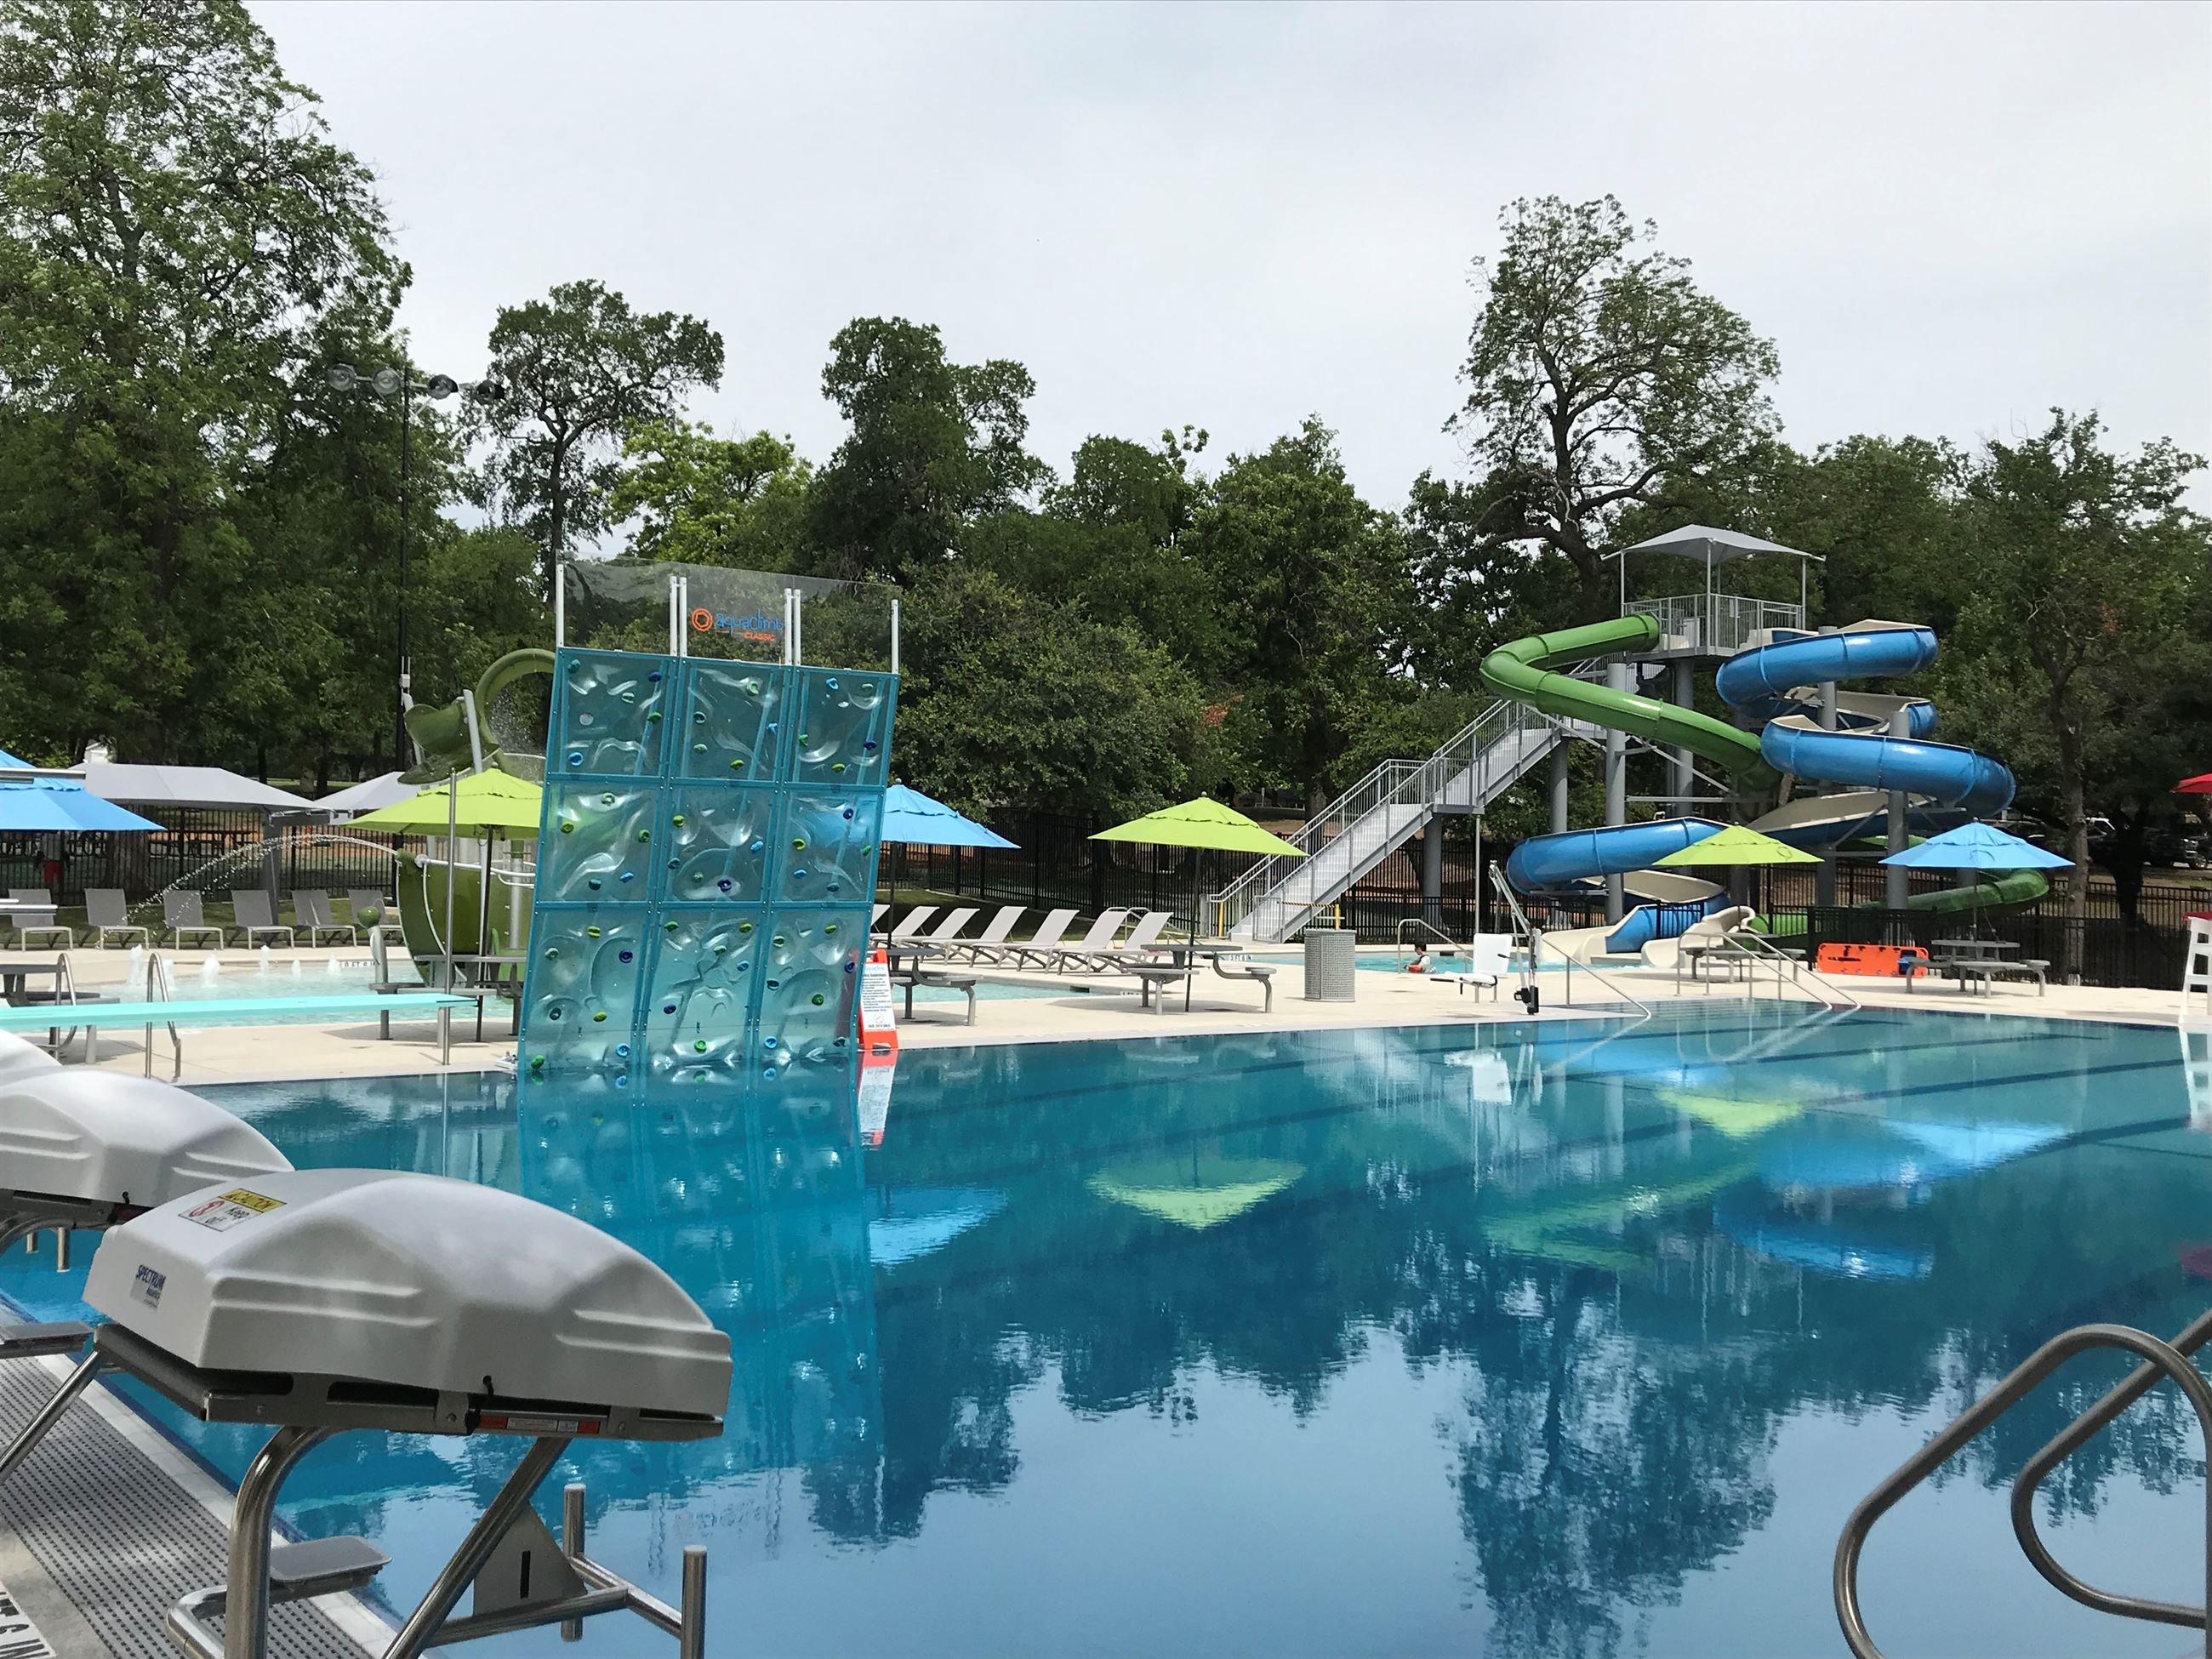 Kidd Springs Aquatic Center Lap Pool & Slide